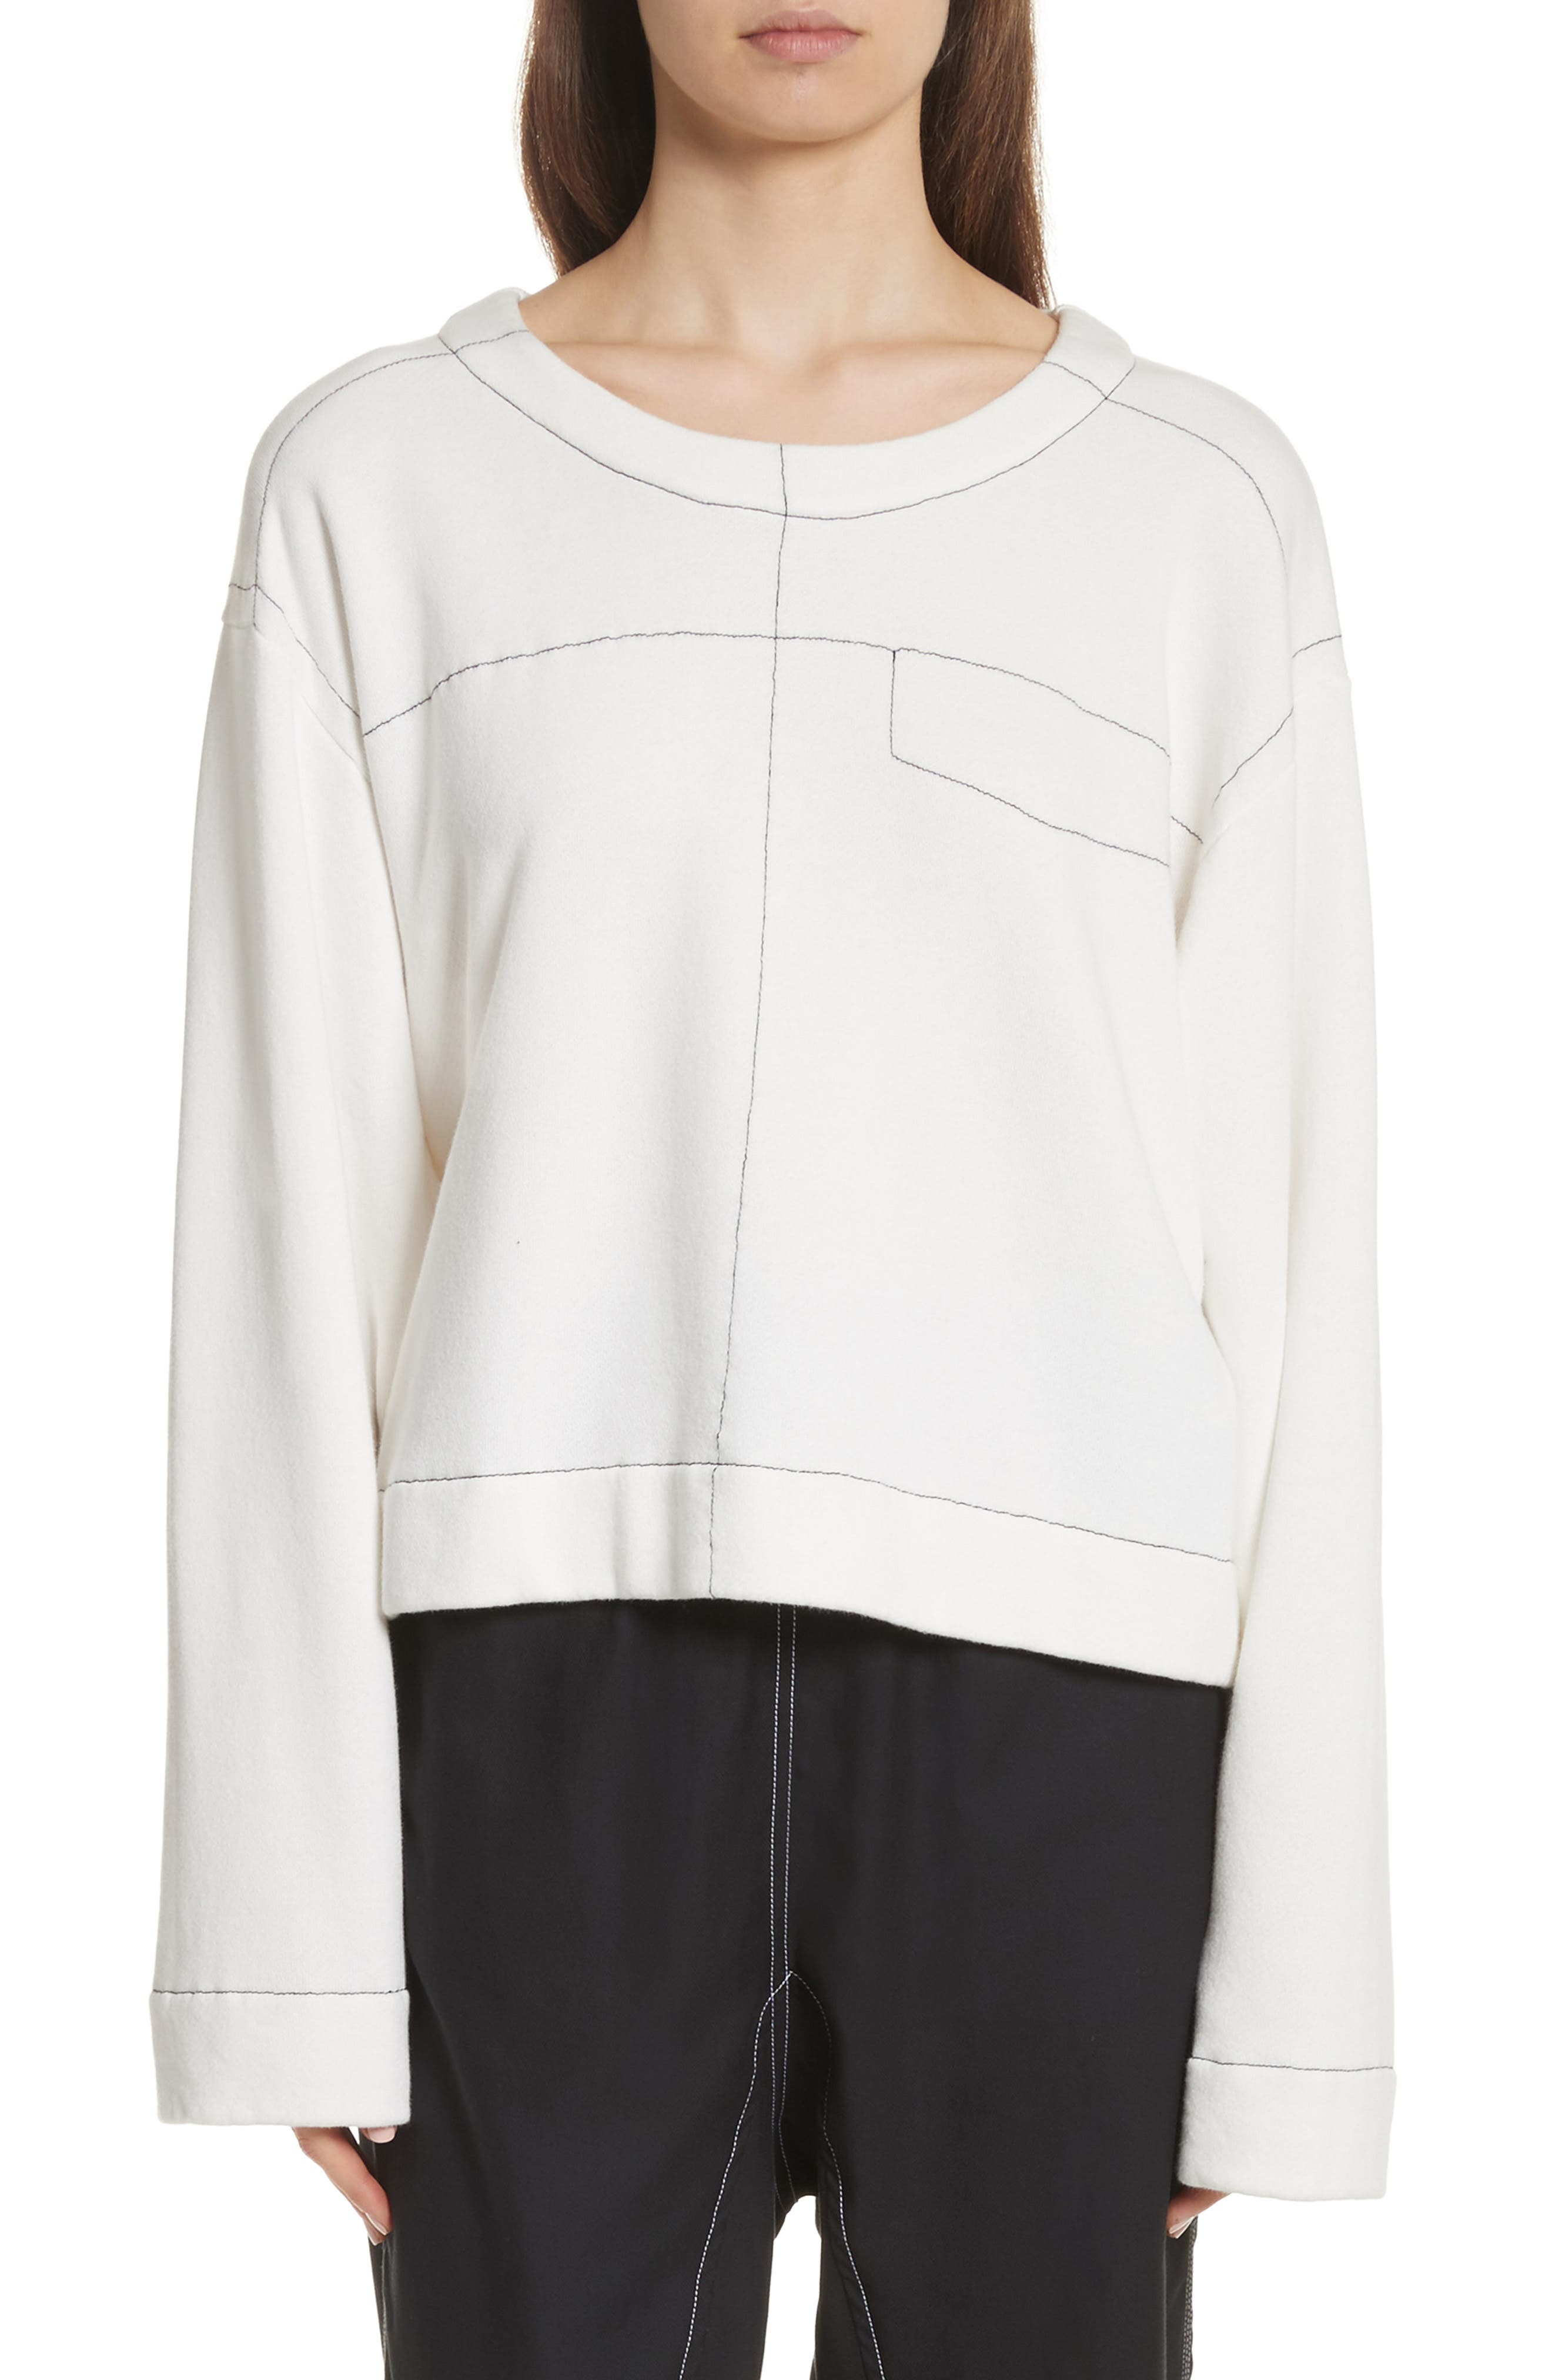 Topstitch Sweater,                             Main thumbnail 1, color,                             Off White